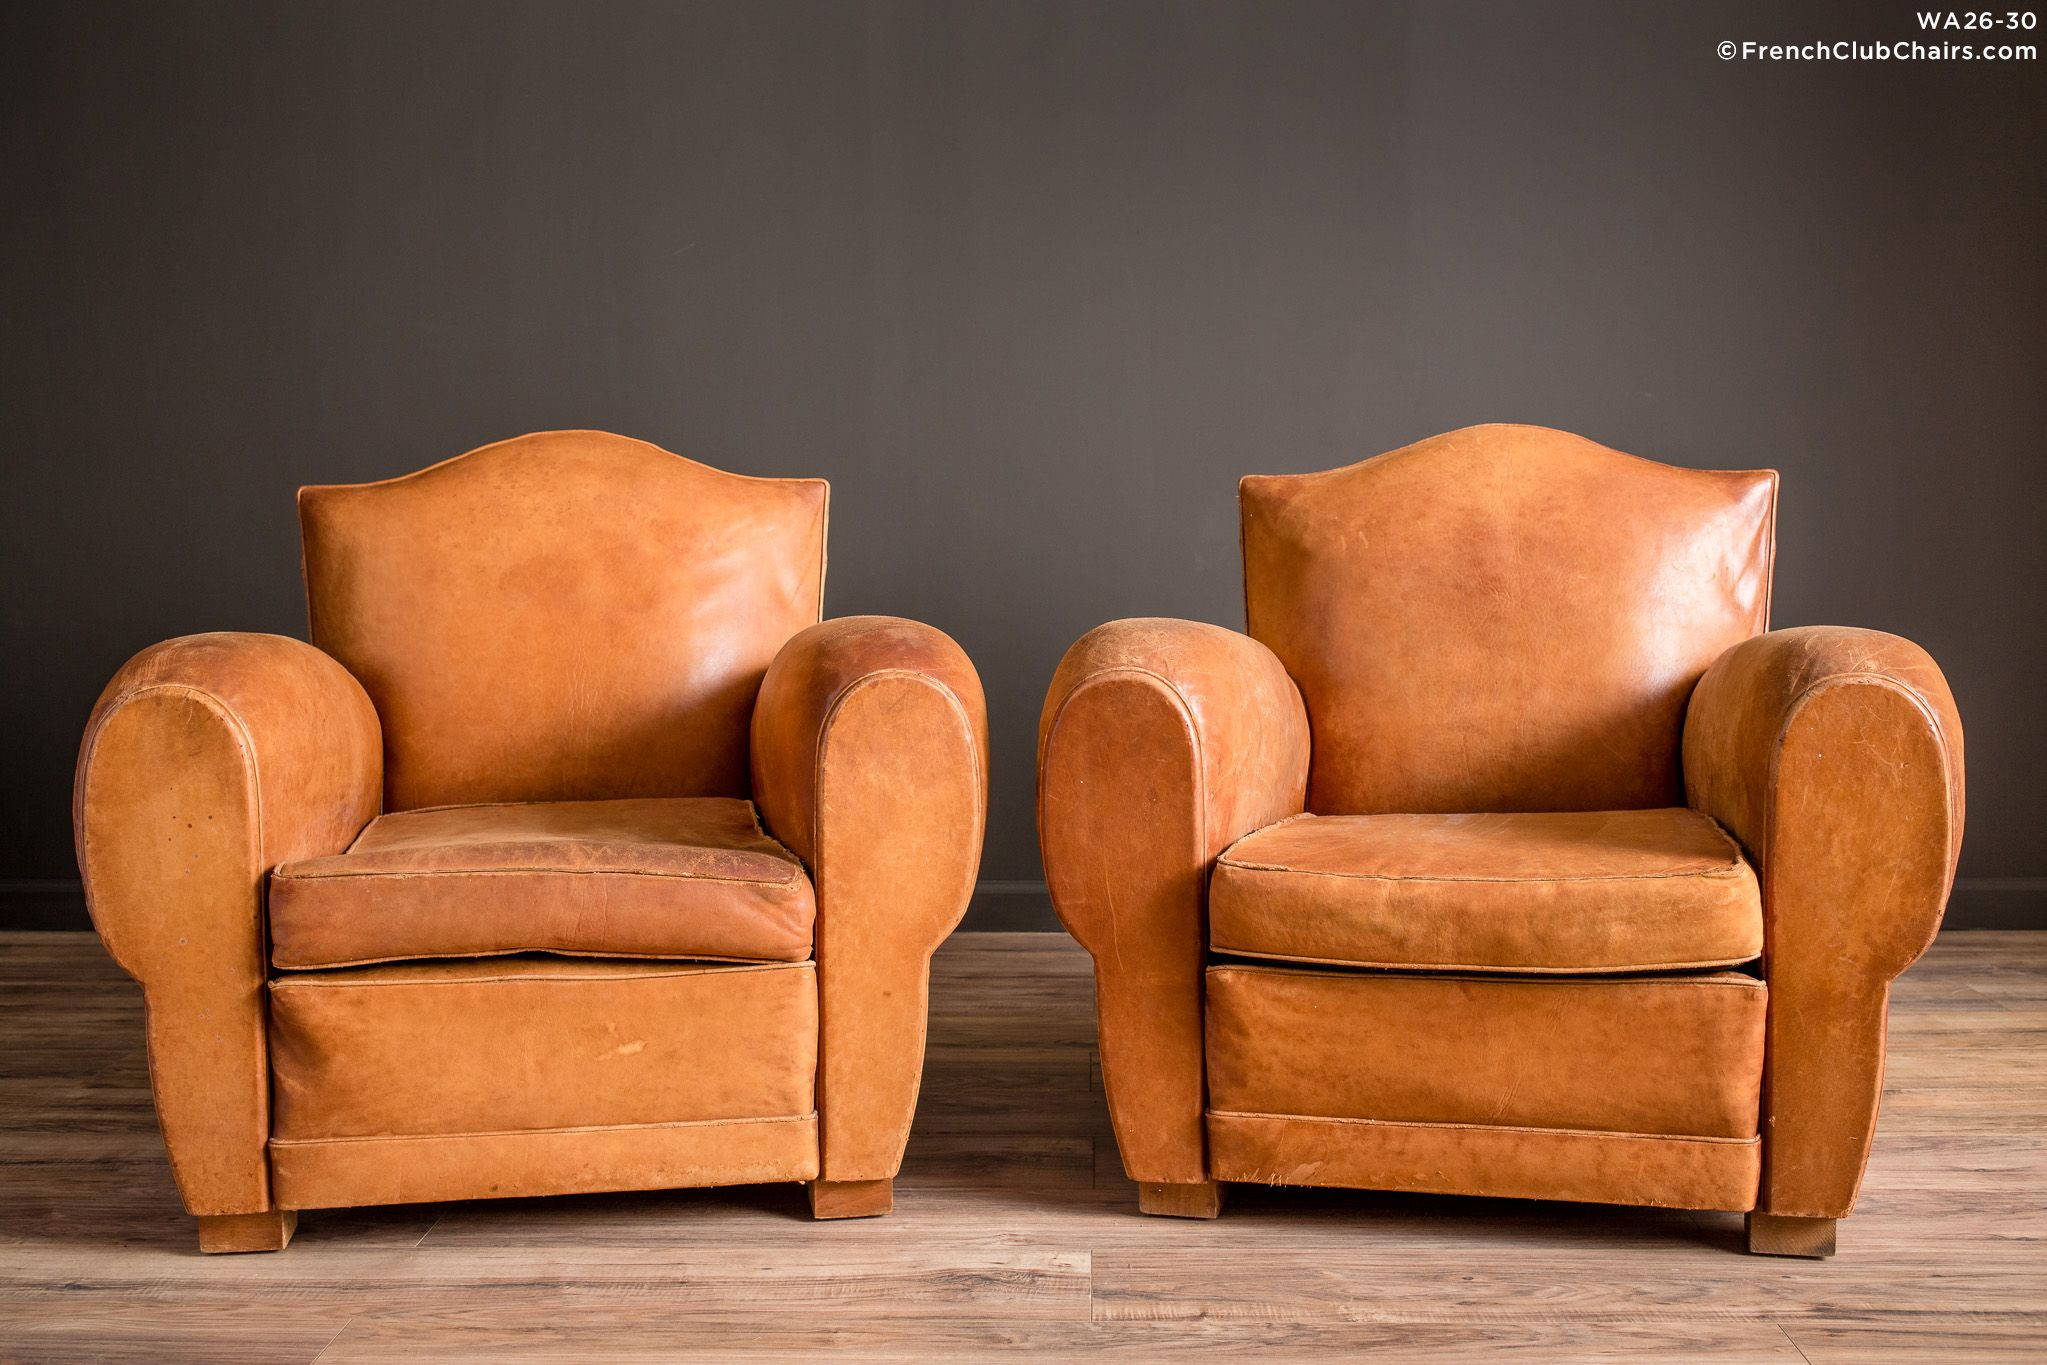 French Club Chair #53 - French Club Chairs By Williamu0027s Antiks | WA26-30 Giverny Gendarme Light  Caramel Pair Of